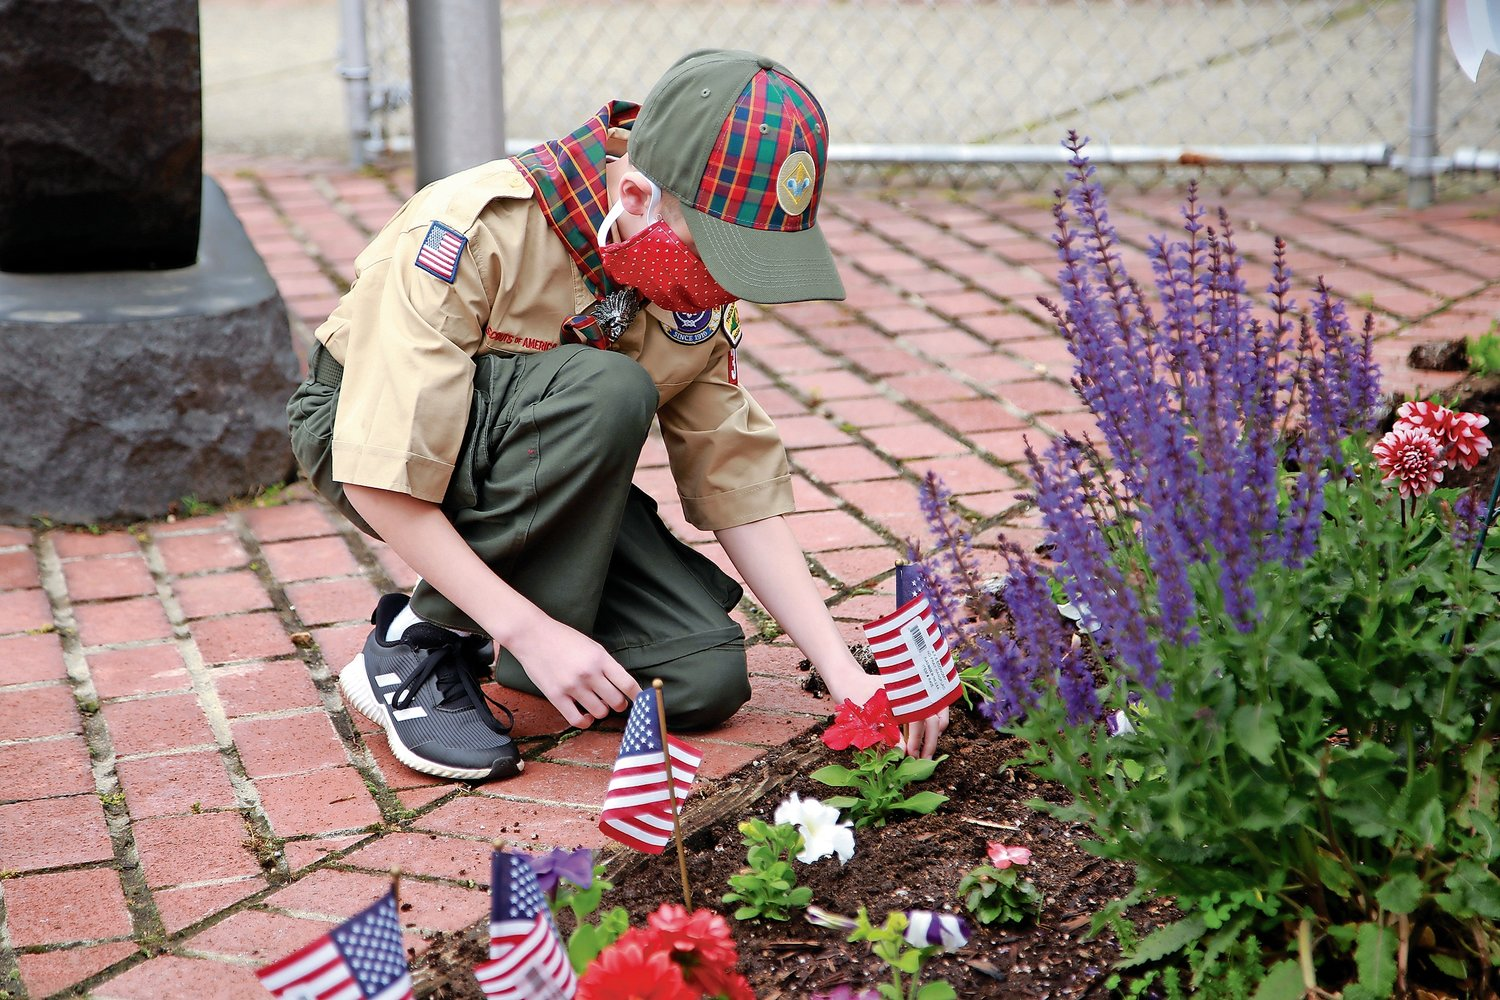 Cub Scout Vincent Ammendolea joined the rest of his pack in planting flags and flowers in the flower garden outside the VFW building in Franklin Square.